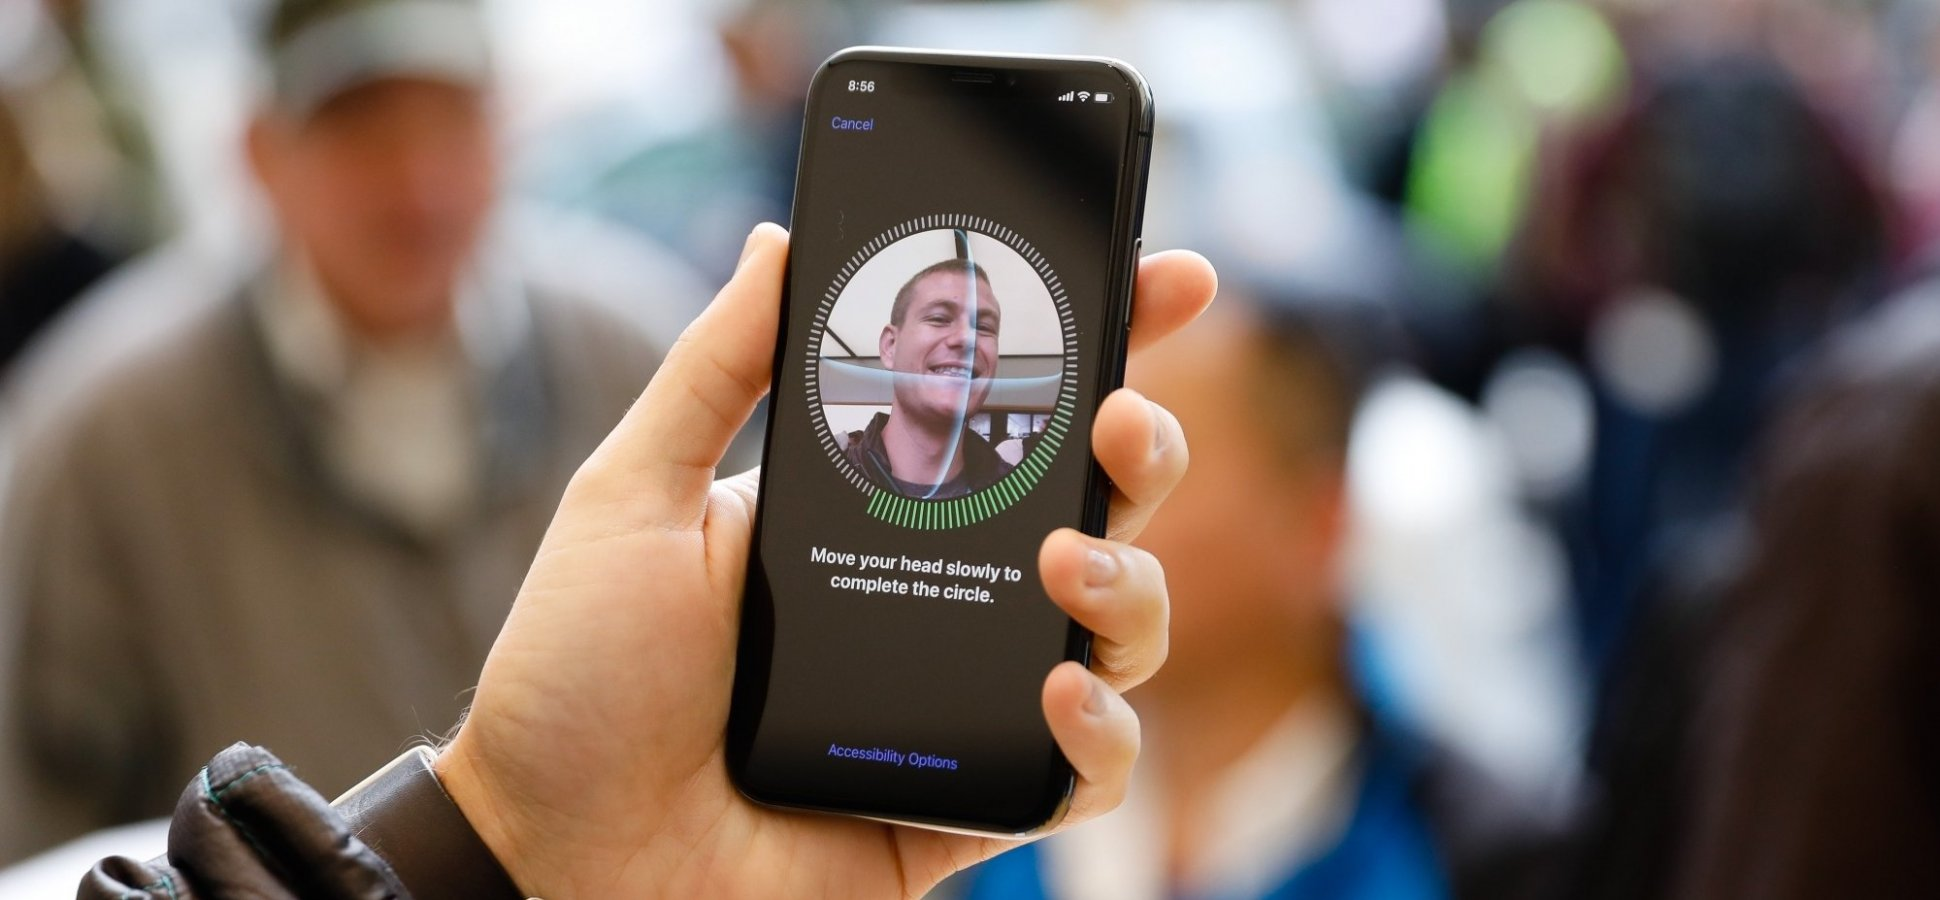 If You Really Want to Protect Your iPhone, Stop Using Face ID Now